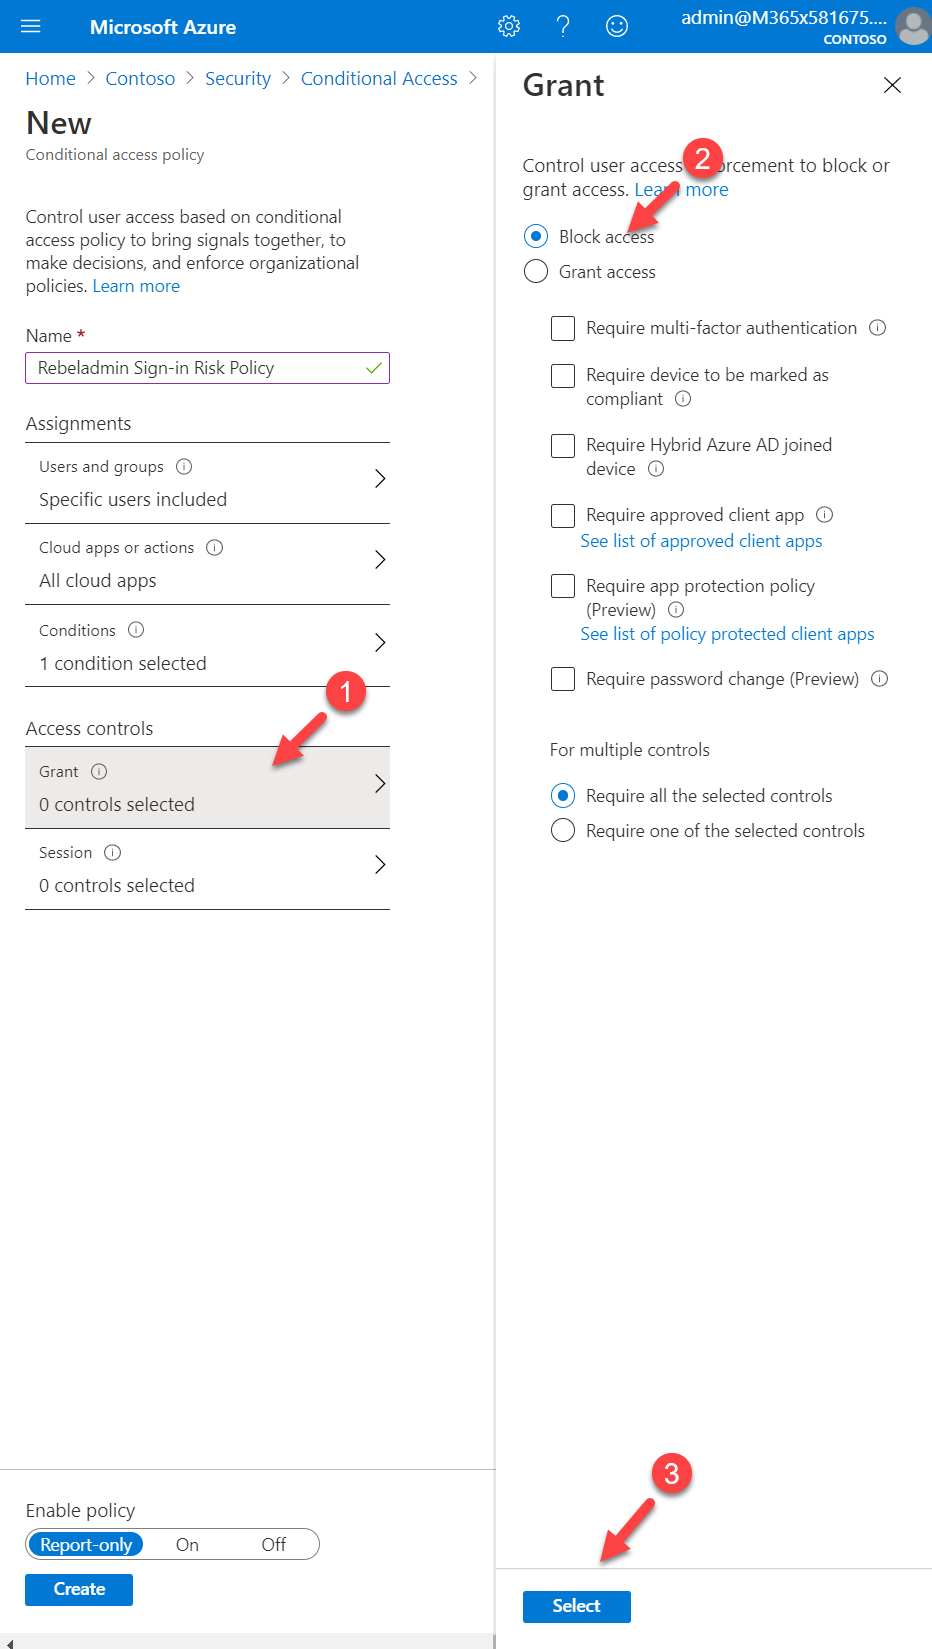 Conditional access policy access control settings